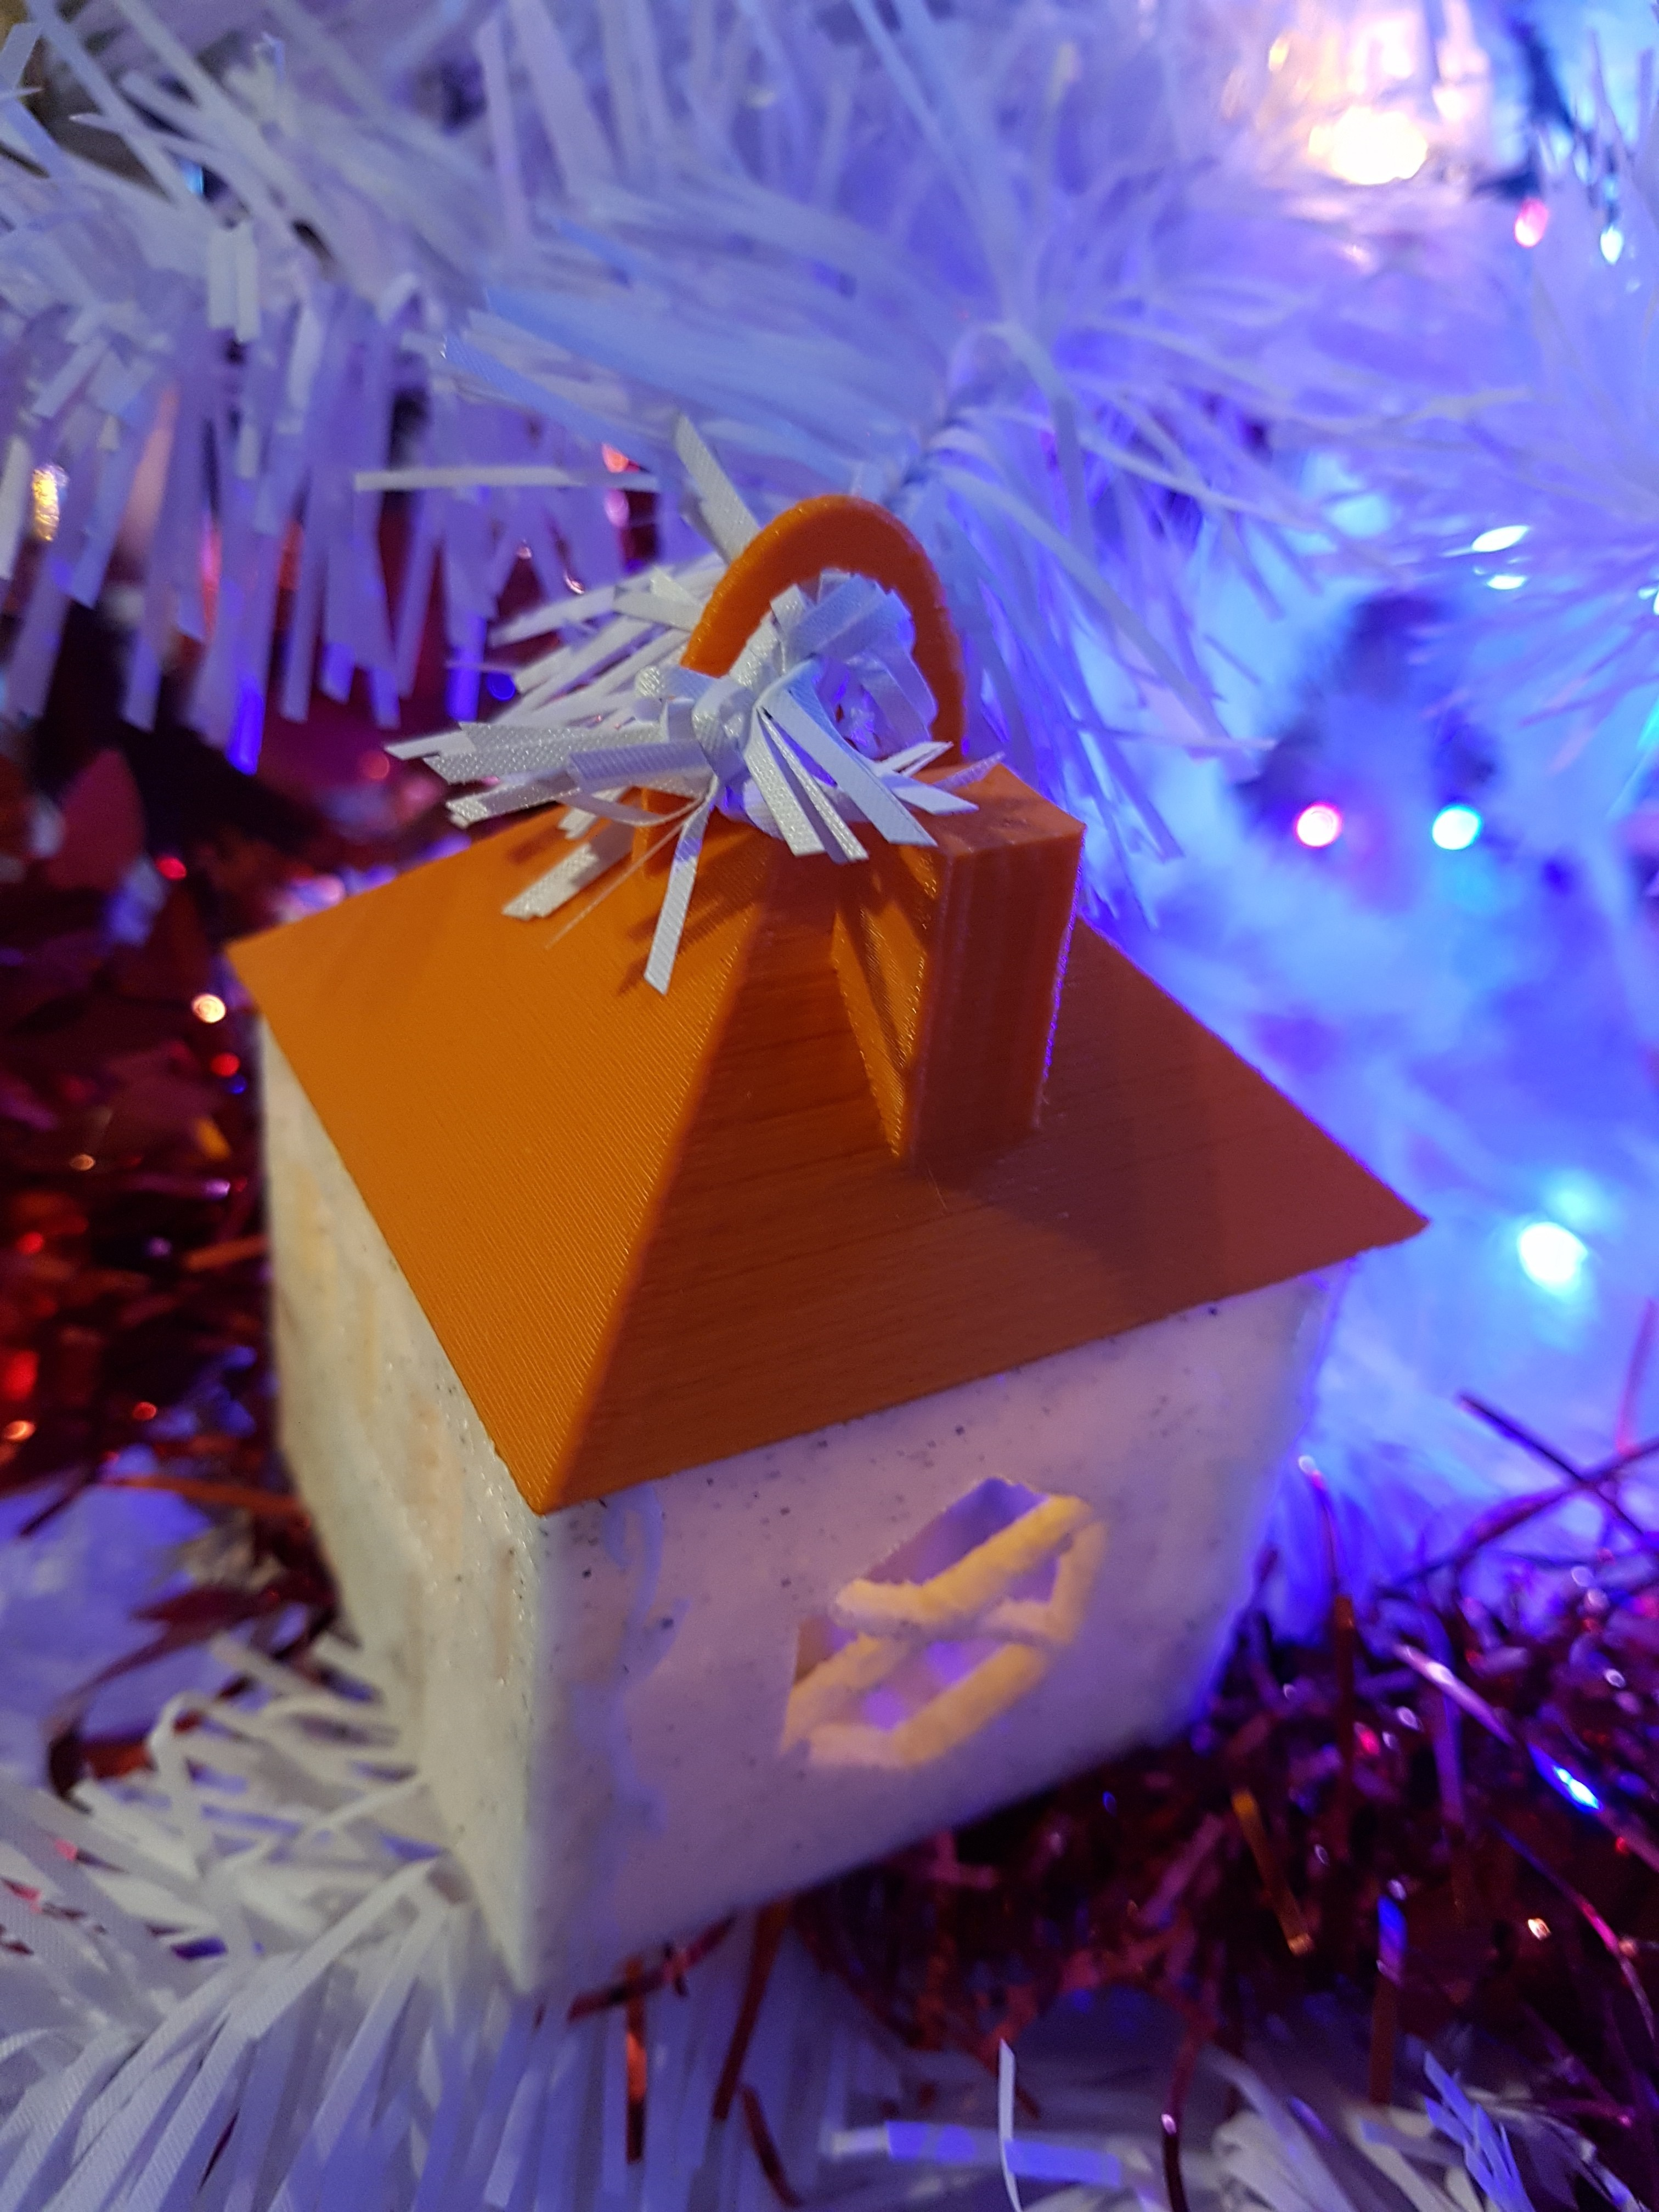 20171202_171418.jpg Download STL file house (box and tealight holder and Christmas ball) • 3D printing object, catf3d